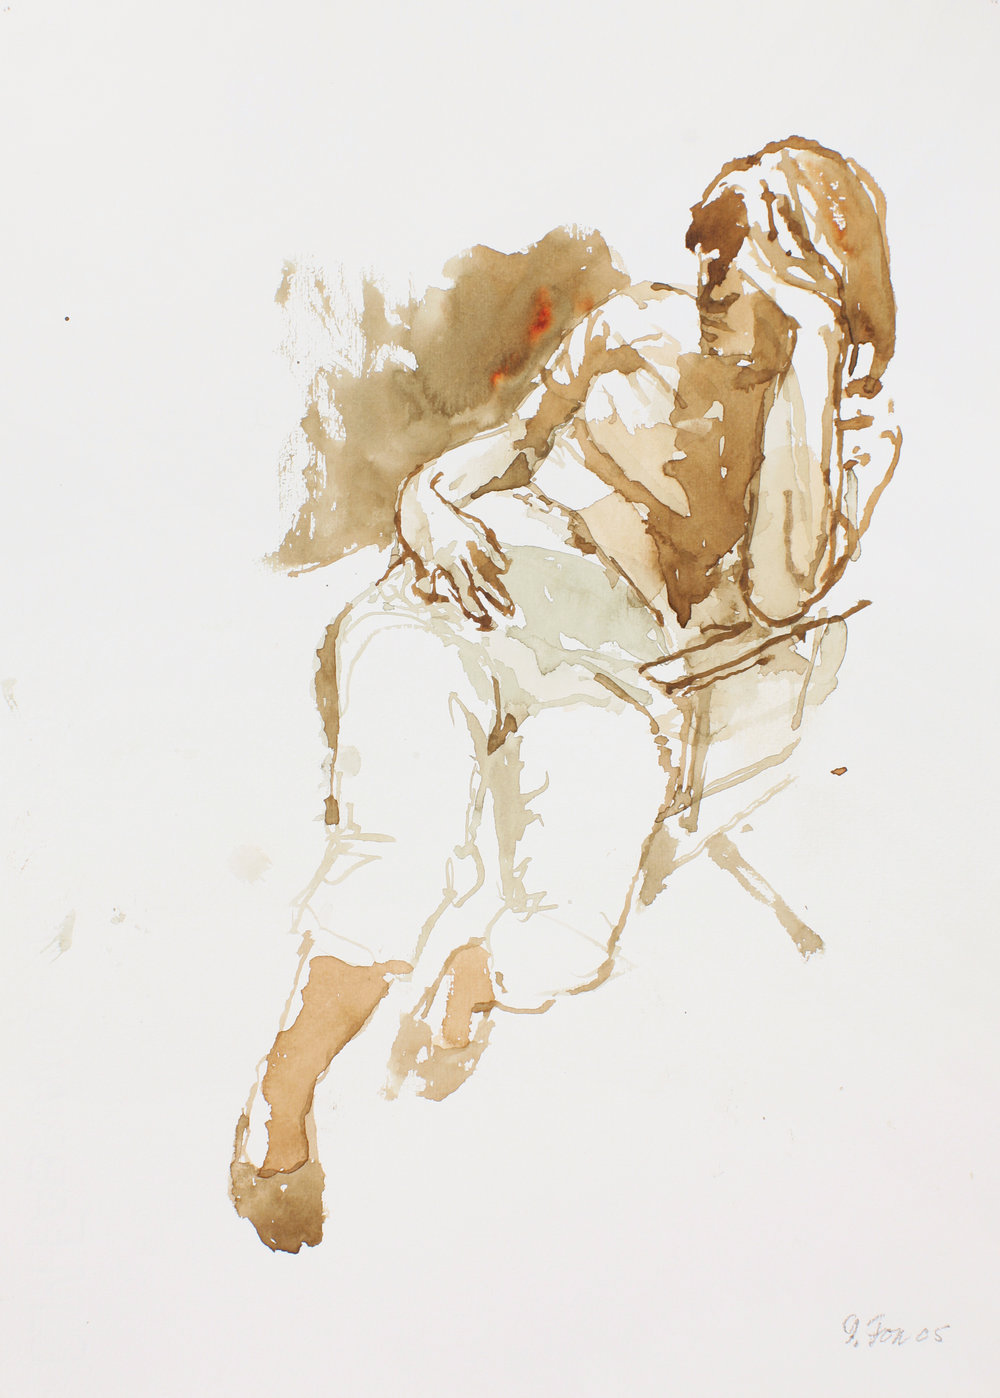 2005_Woman_in__Chair_watercolour_on_paper_15x11in_38x28cm_WPF002.jpg